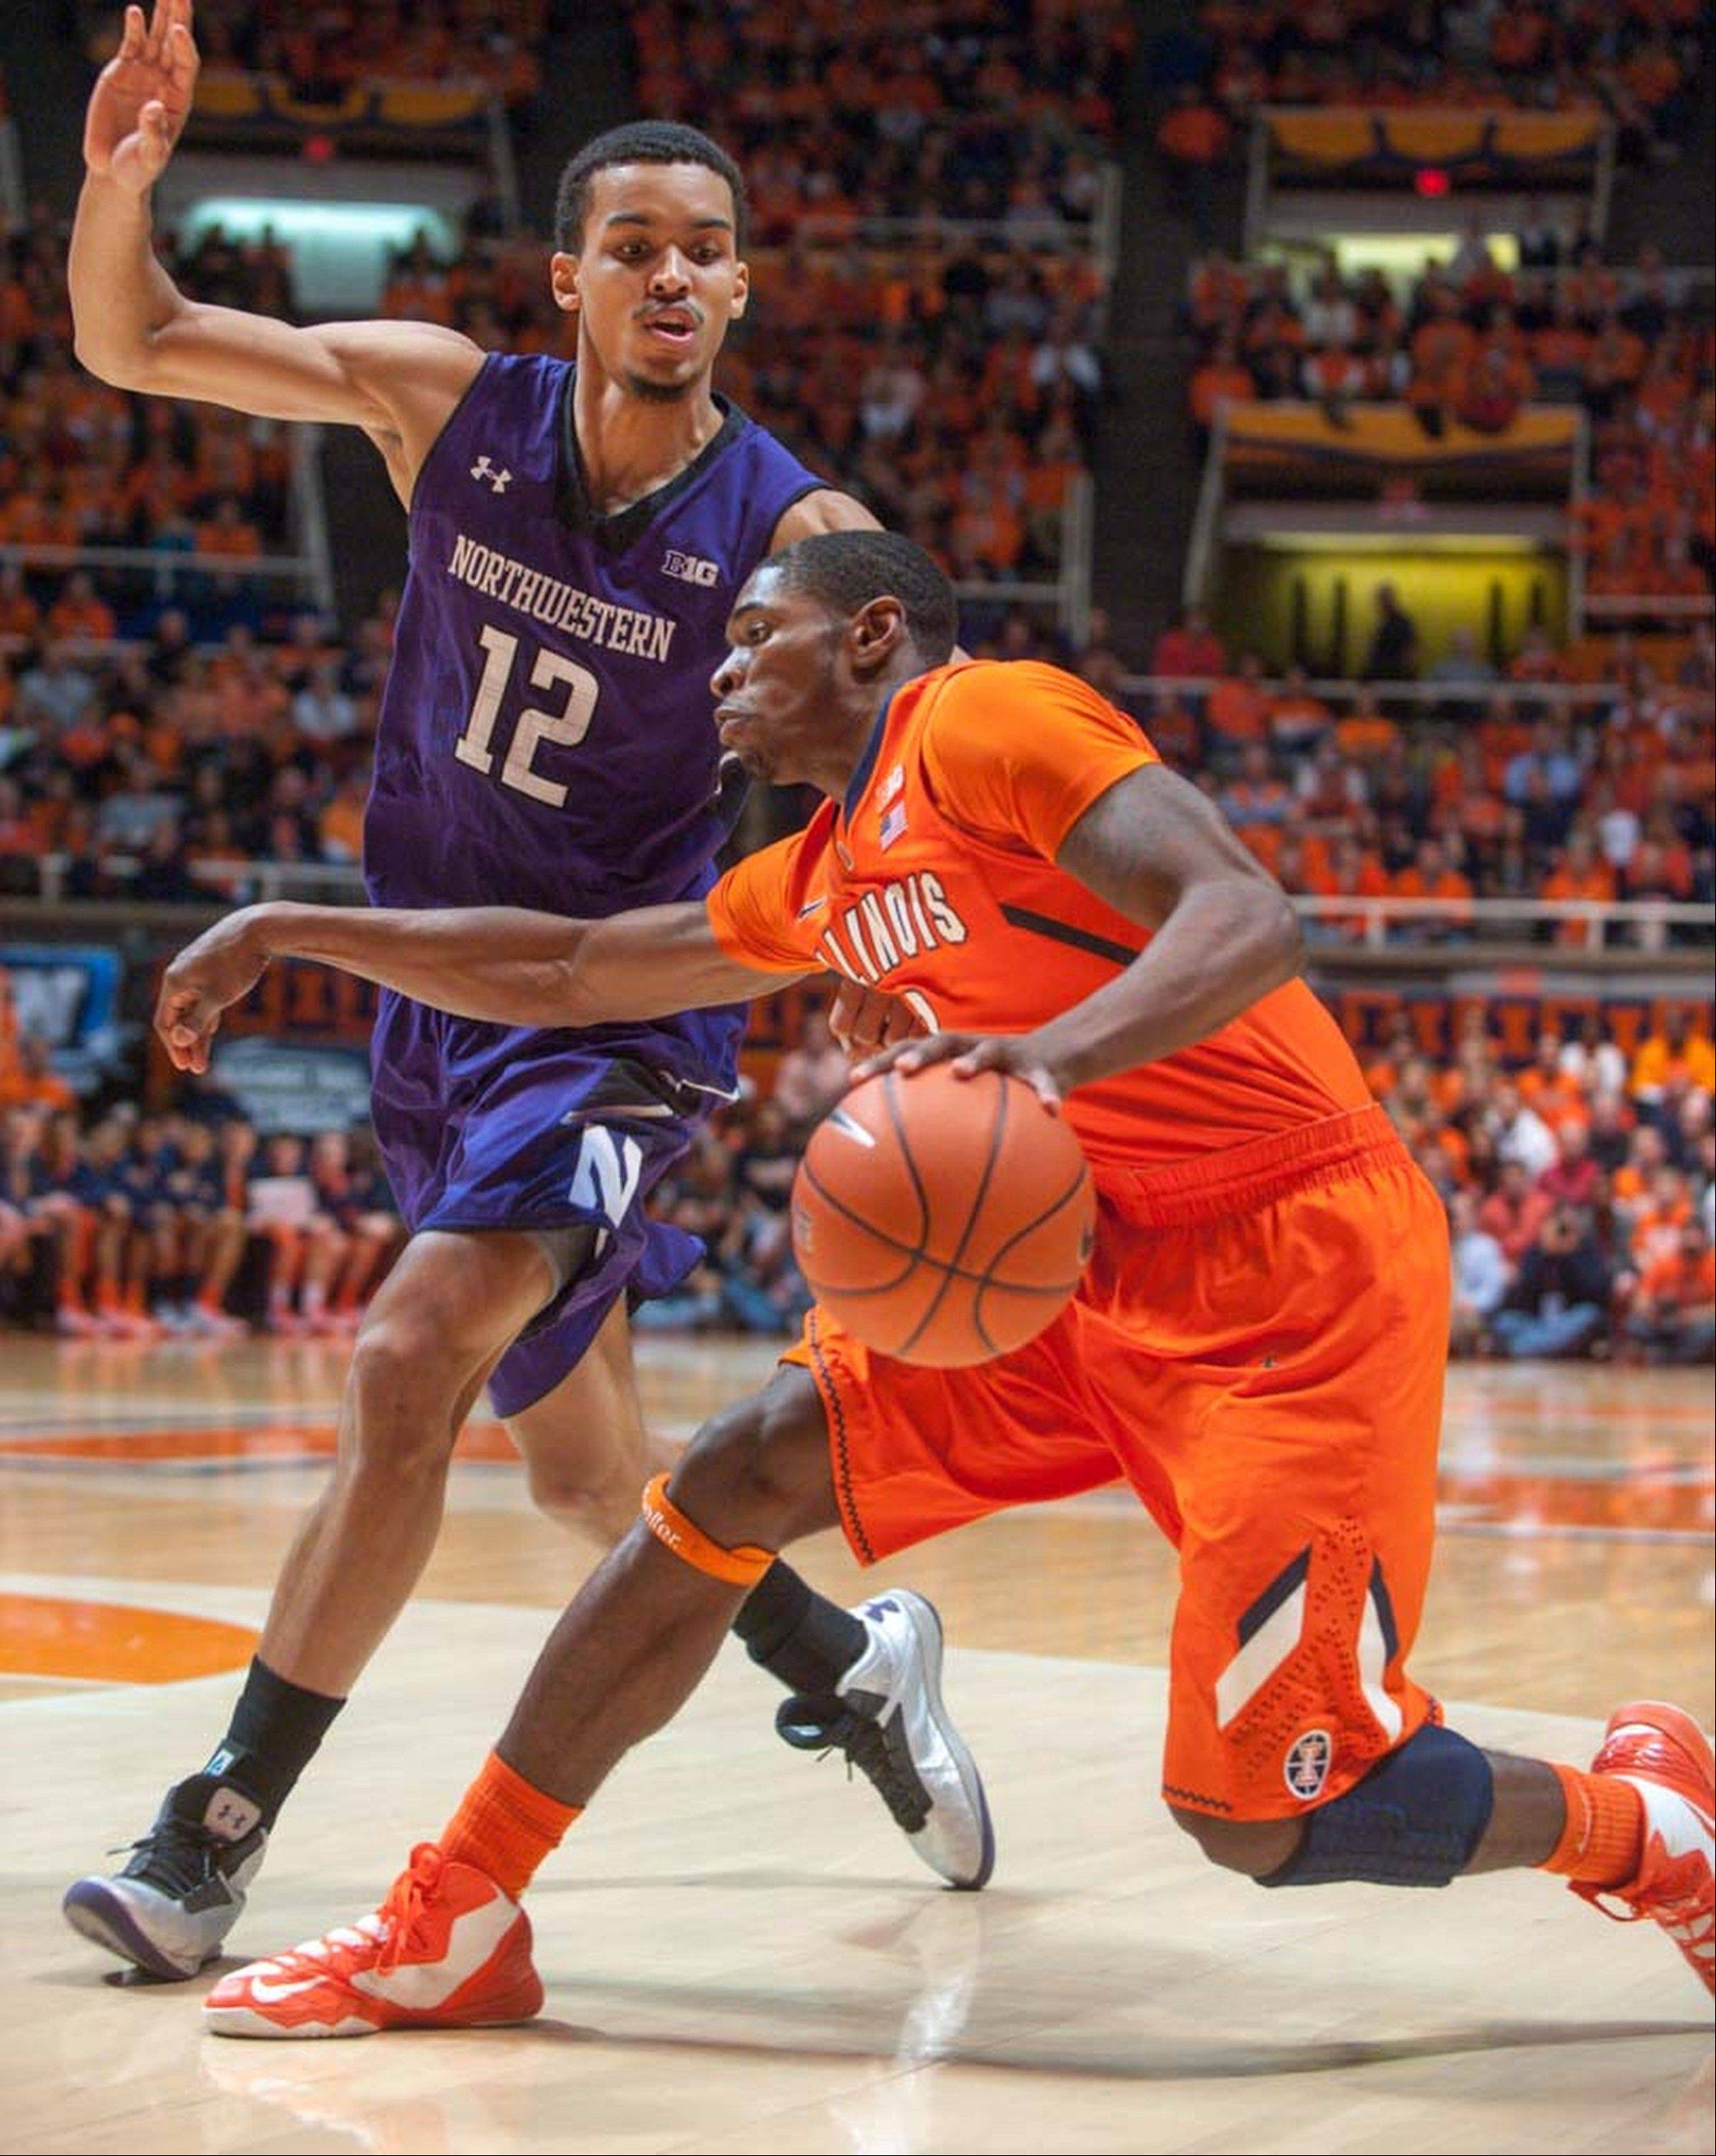 Illinois guard Brandon Paul, right, tries to move past Northwestern forward Jared Swopshire (12) during the first half of an NCAA college basketball game on Thursday, Jan. 17, 2013, in Champaign, Ill. Swopshire is out for the rest of the season after a knee injury.